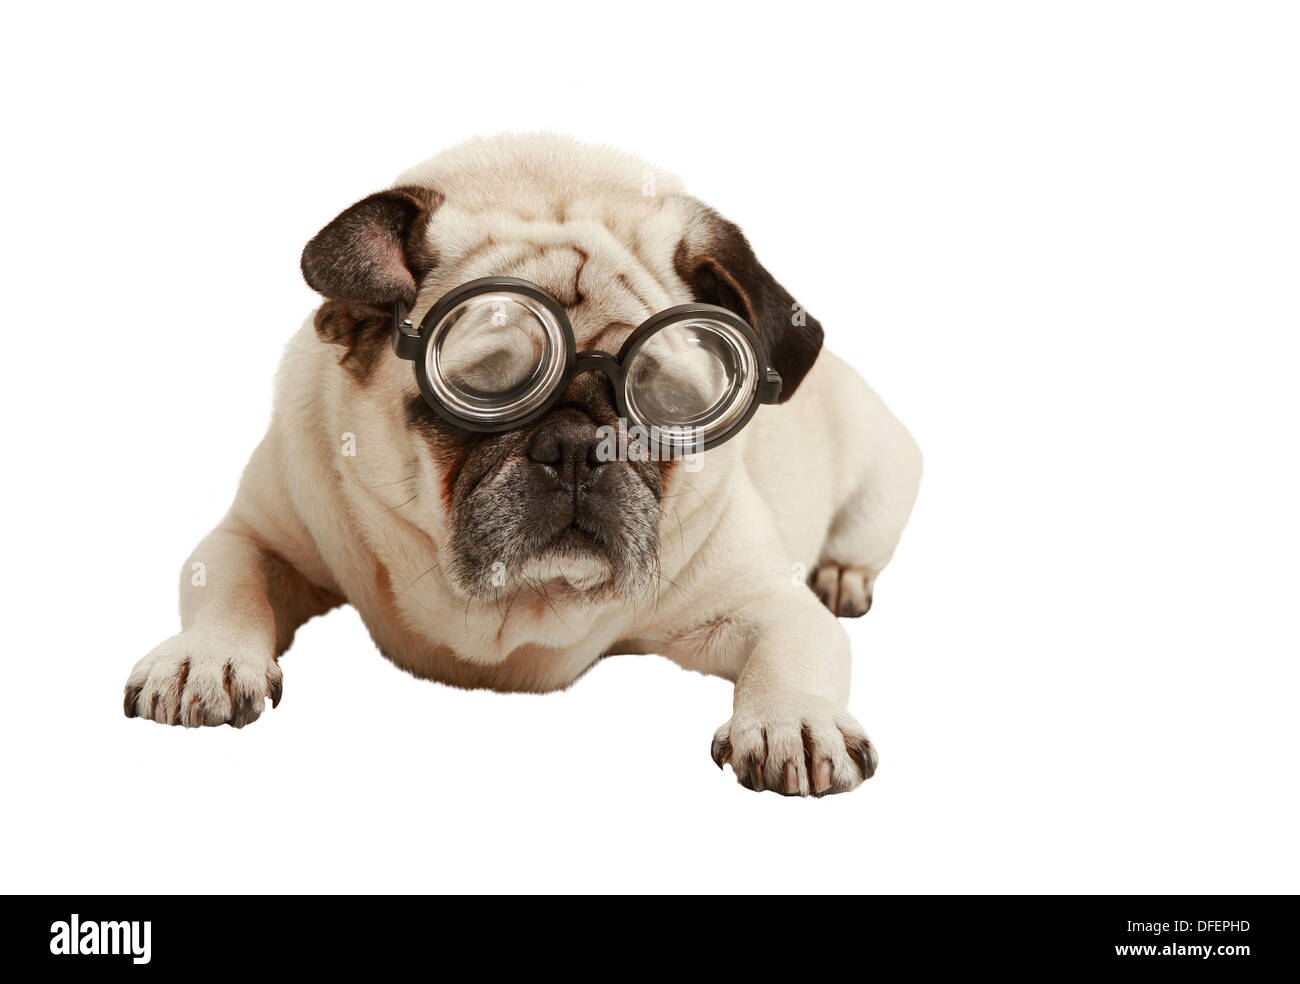 Pug with glasses, exempted, white background, recumbent, cutout - Stock Image